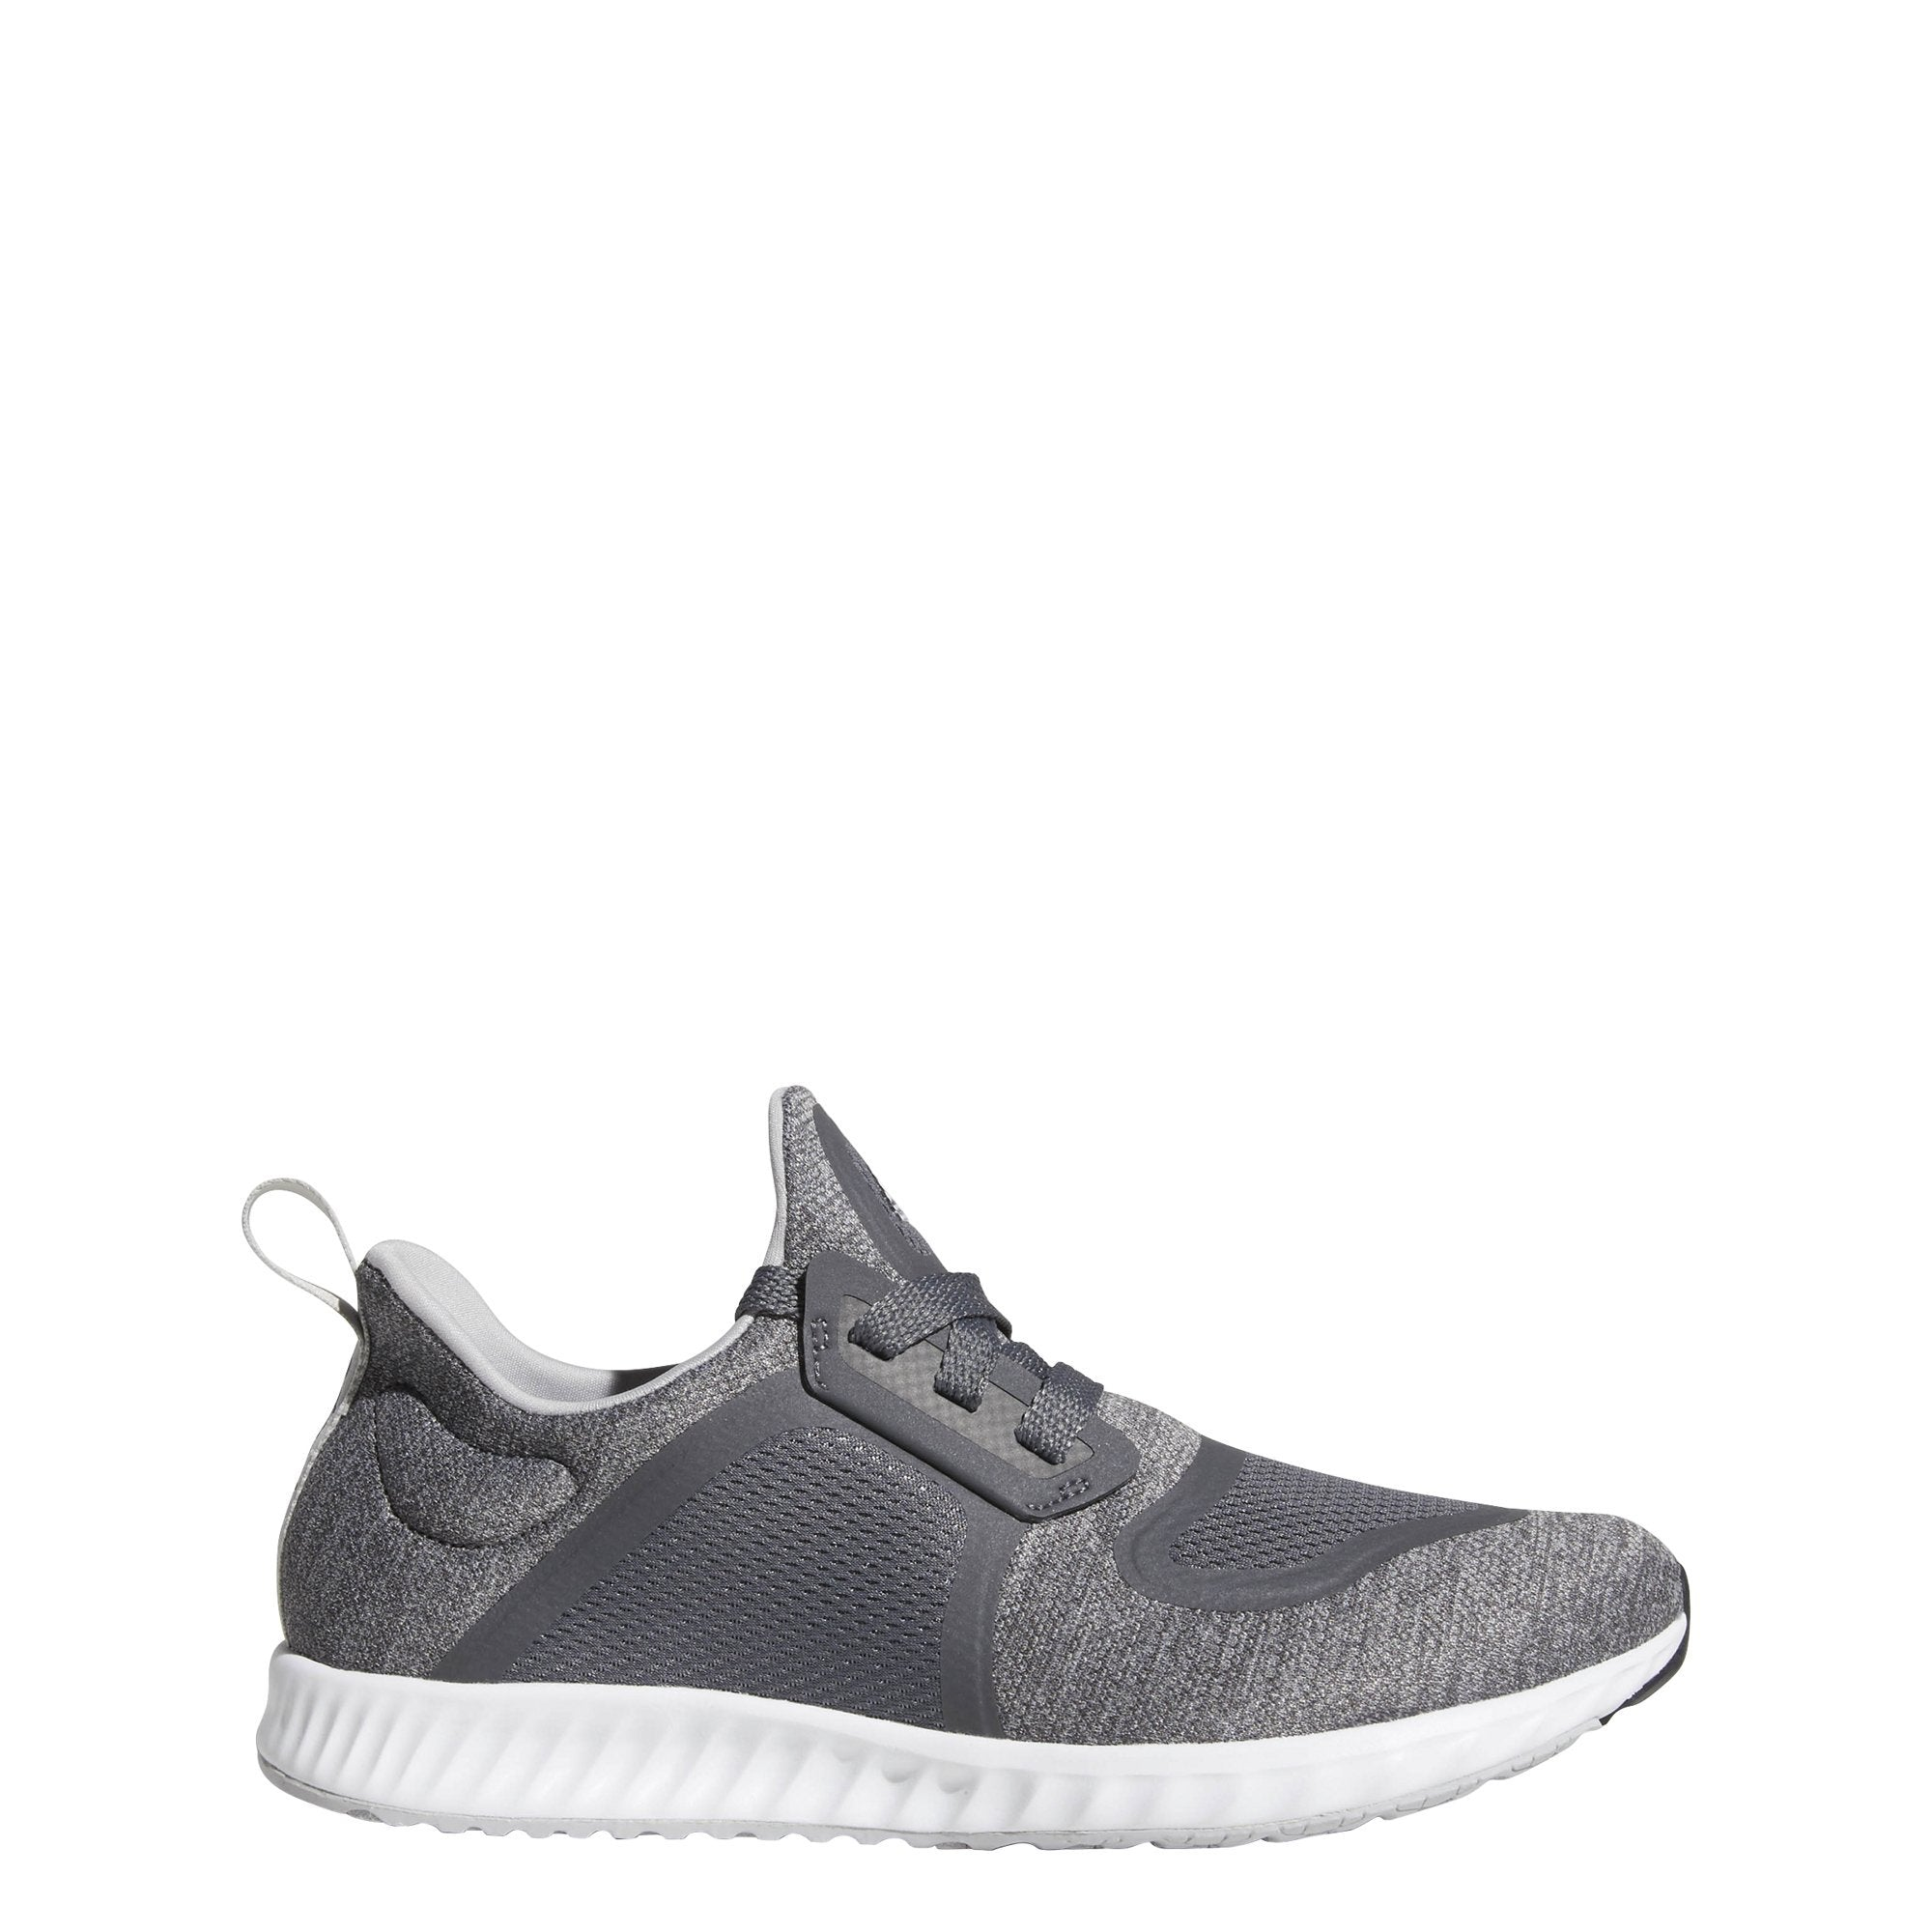 Adidas Women's Edge Lux Clima Shoes - Grey Two f17 / Grey Two f17 / ftwr White Footwear Adidas